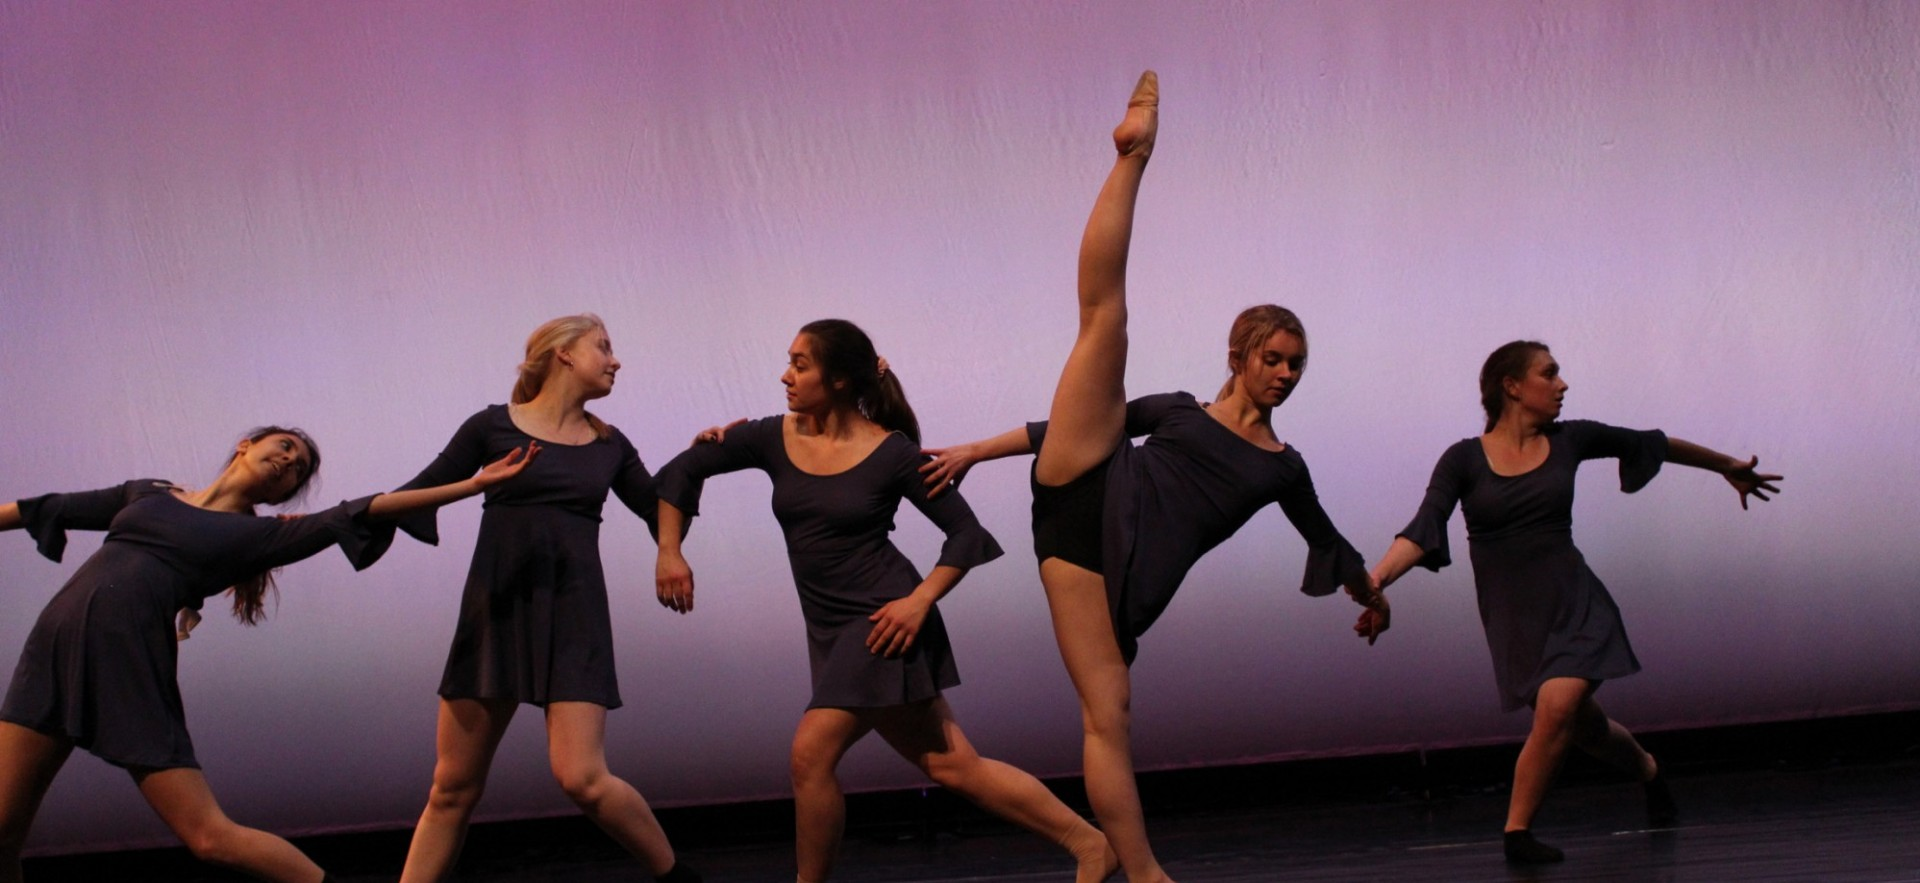 Dancers from our Spring 2019 show performing choreography by Gianna Raimo and Zoe Novello onstage.